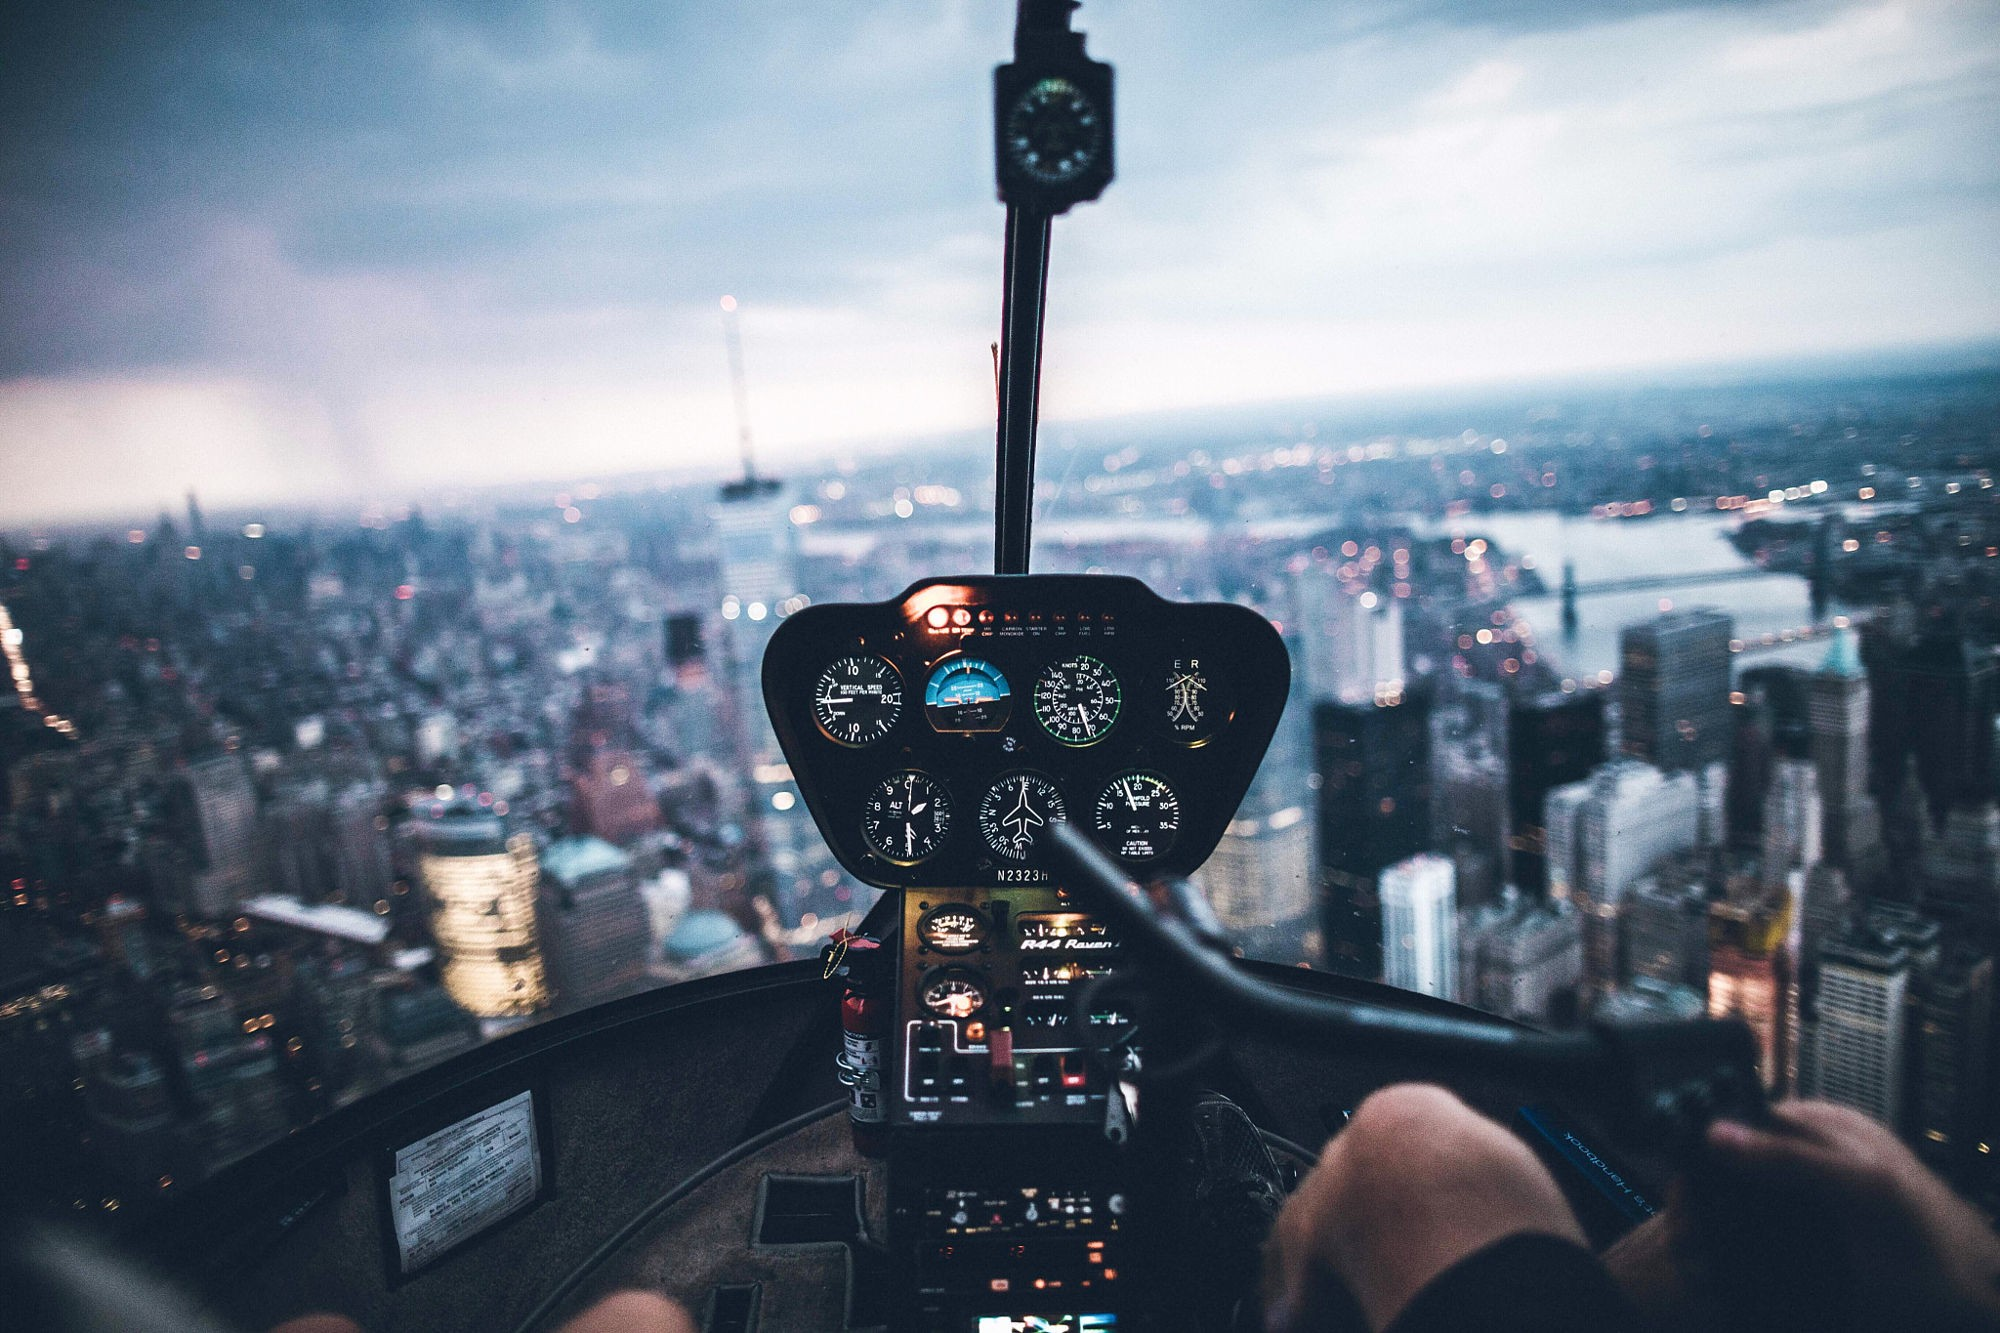 Very Cute Wallpapers For Mobile 240x320 Helicopter Inside View Hd Planes 4k Wallpapers Images